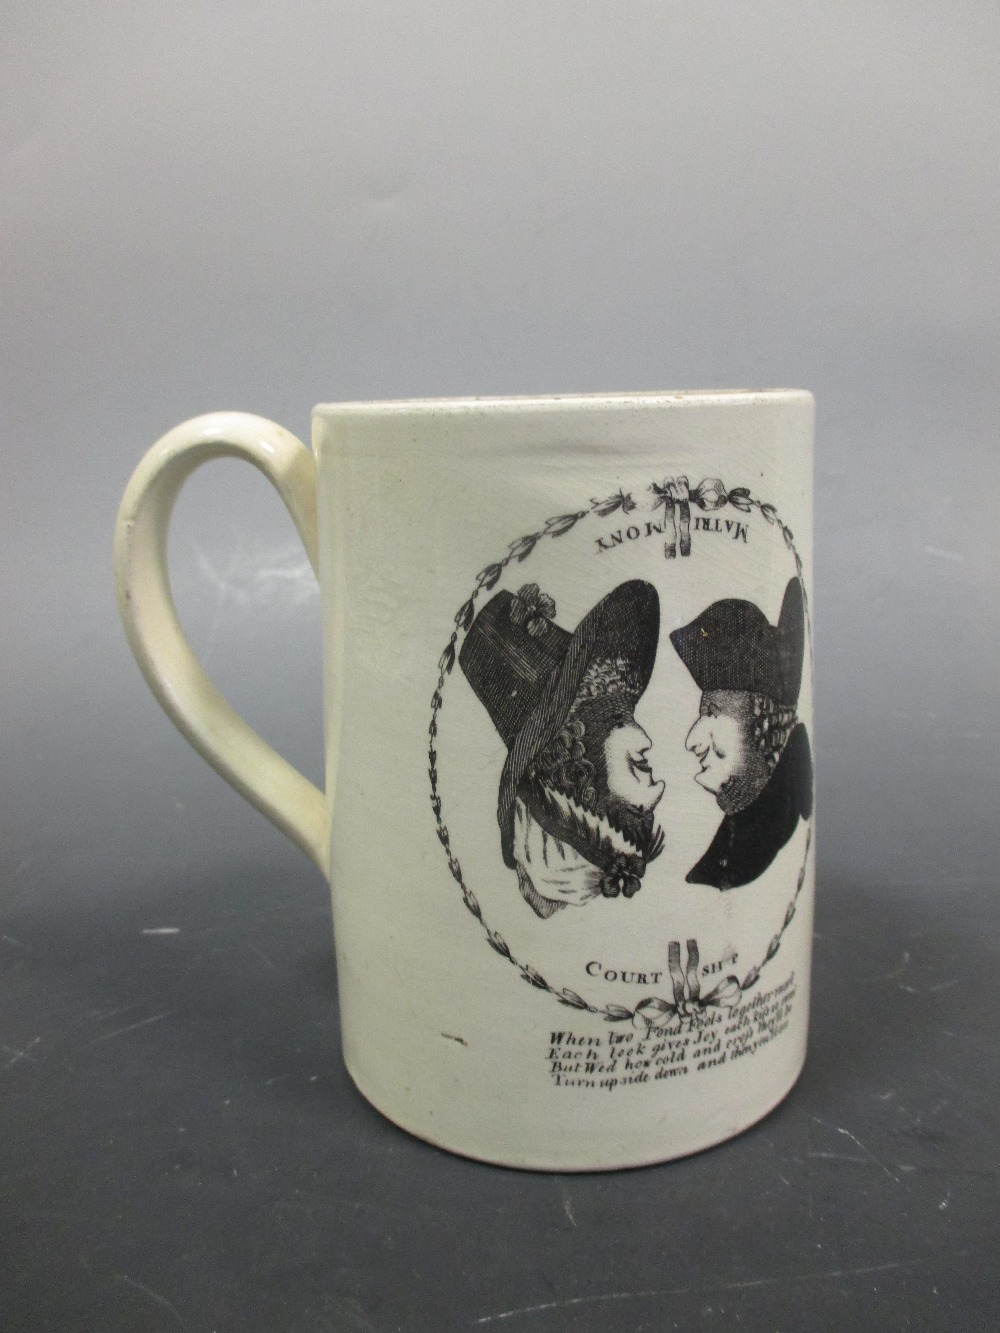 Lot 33 - A late 18th/early 19th century creamware mug printed in black with reversible images relating to '